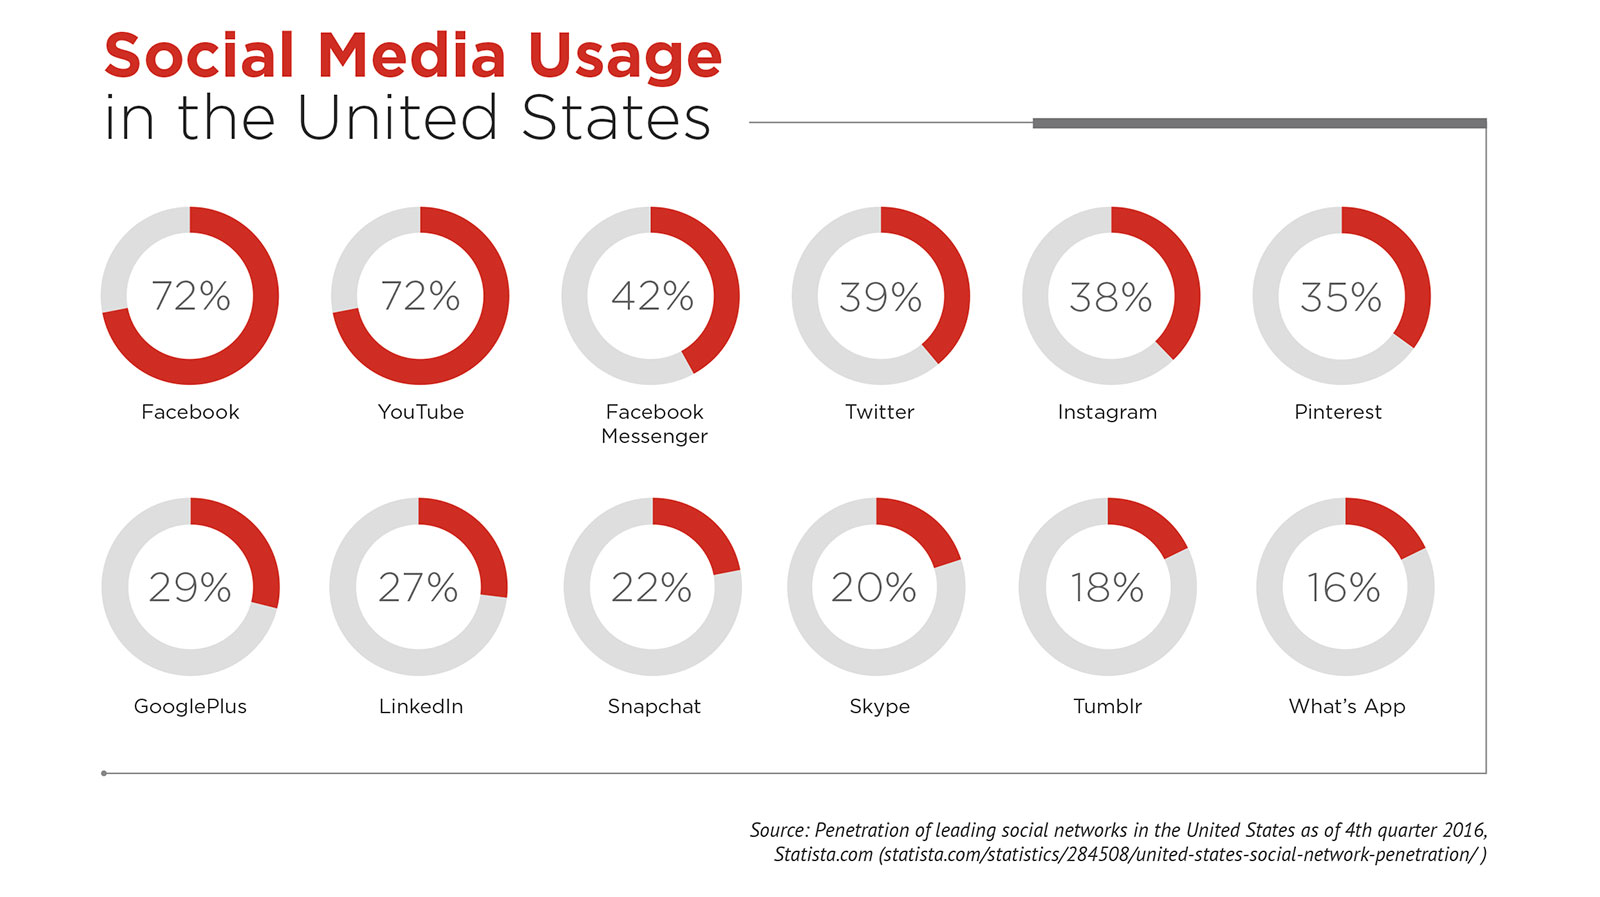 Chart showing social media use by channel